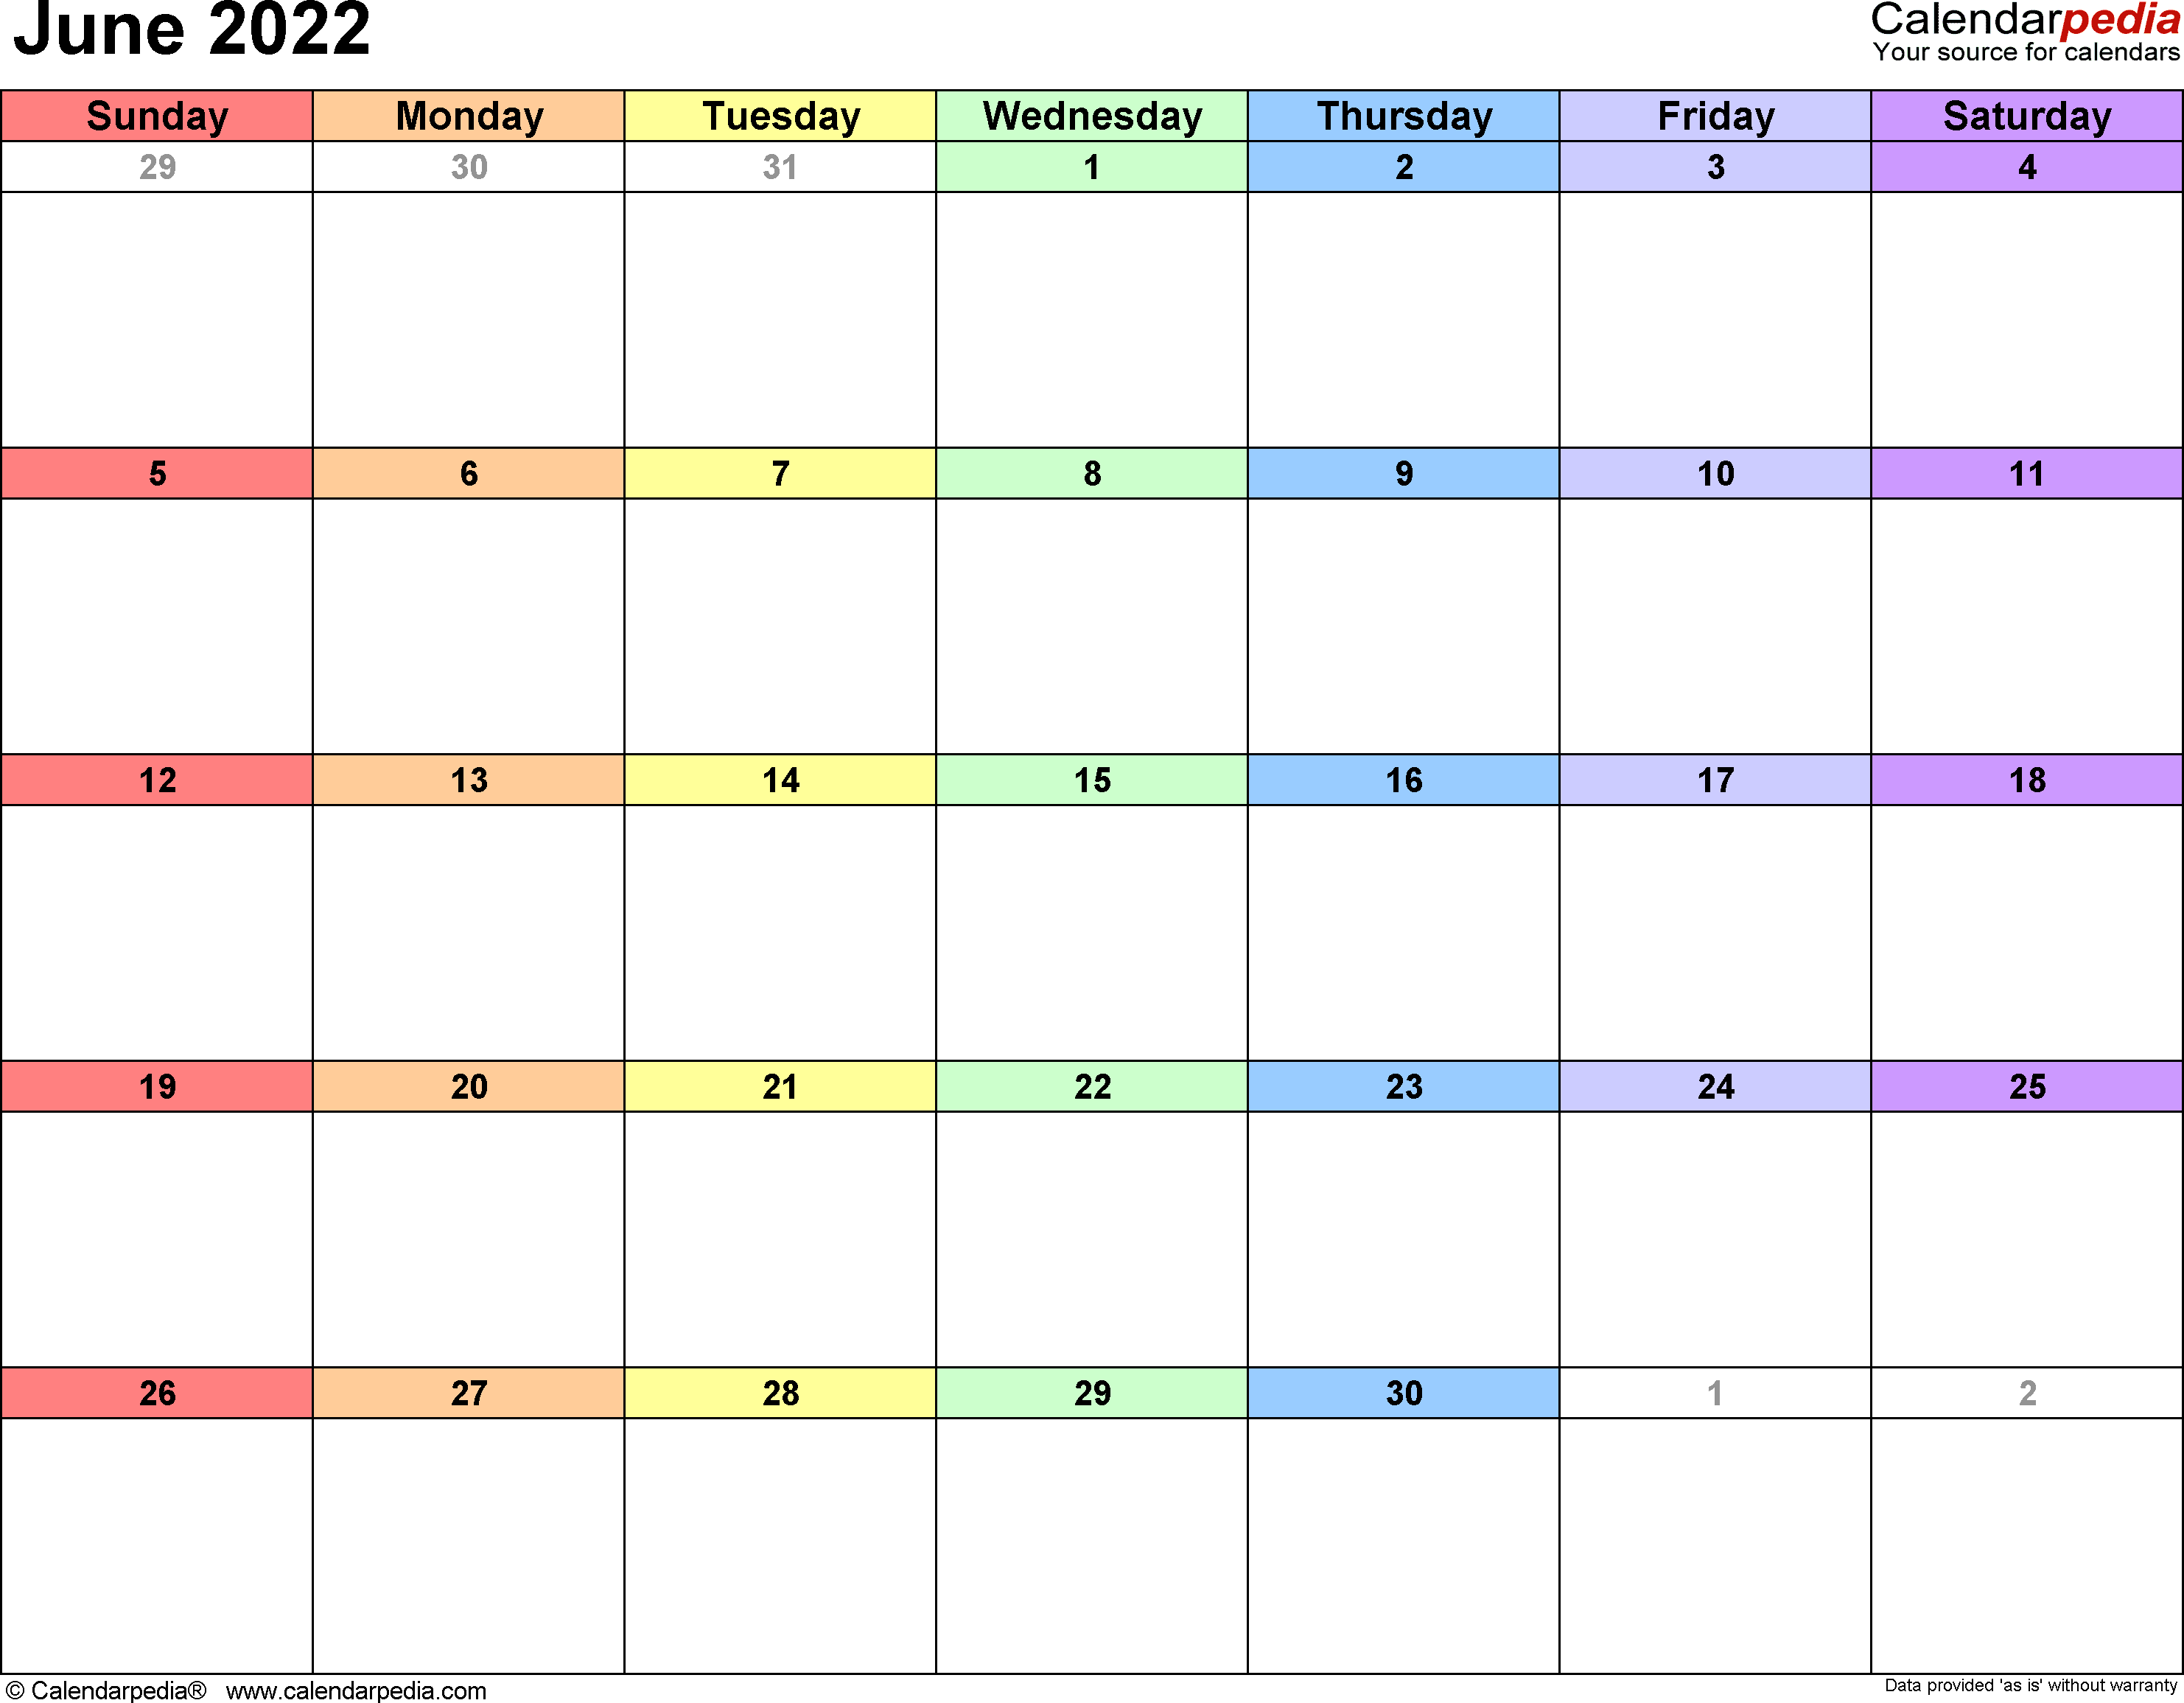 June 2022 calendar printable template